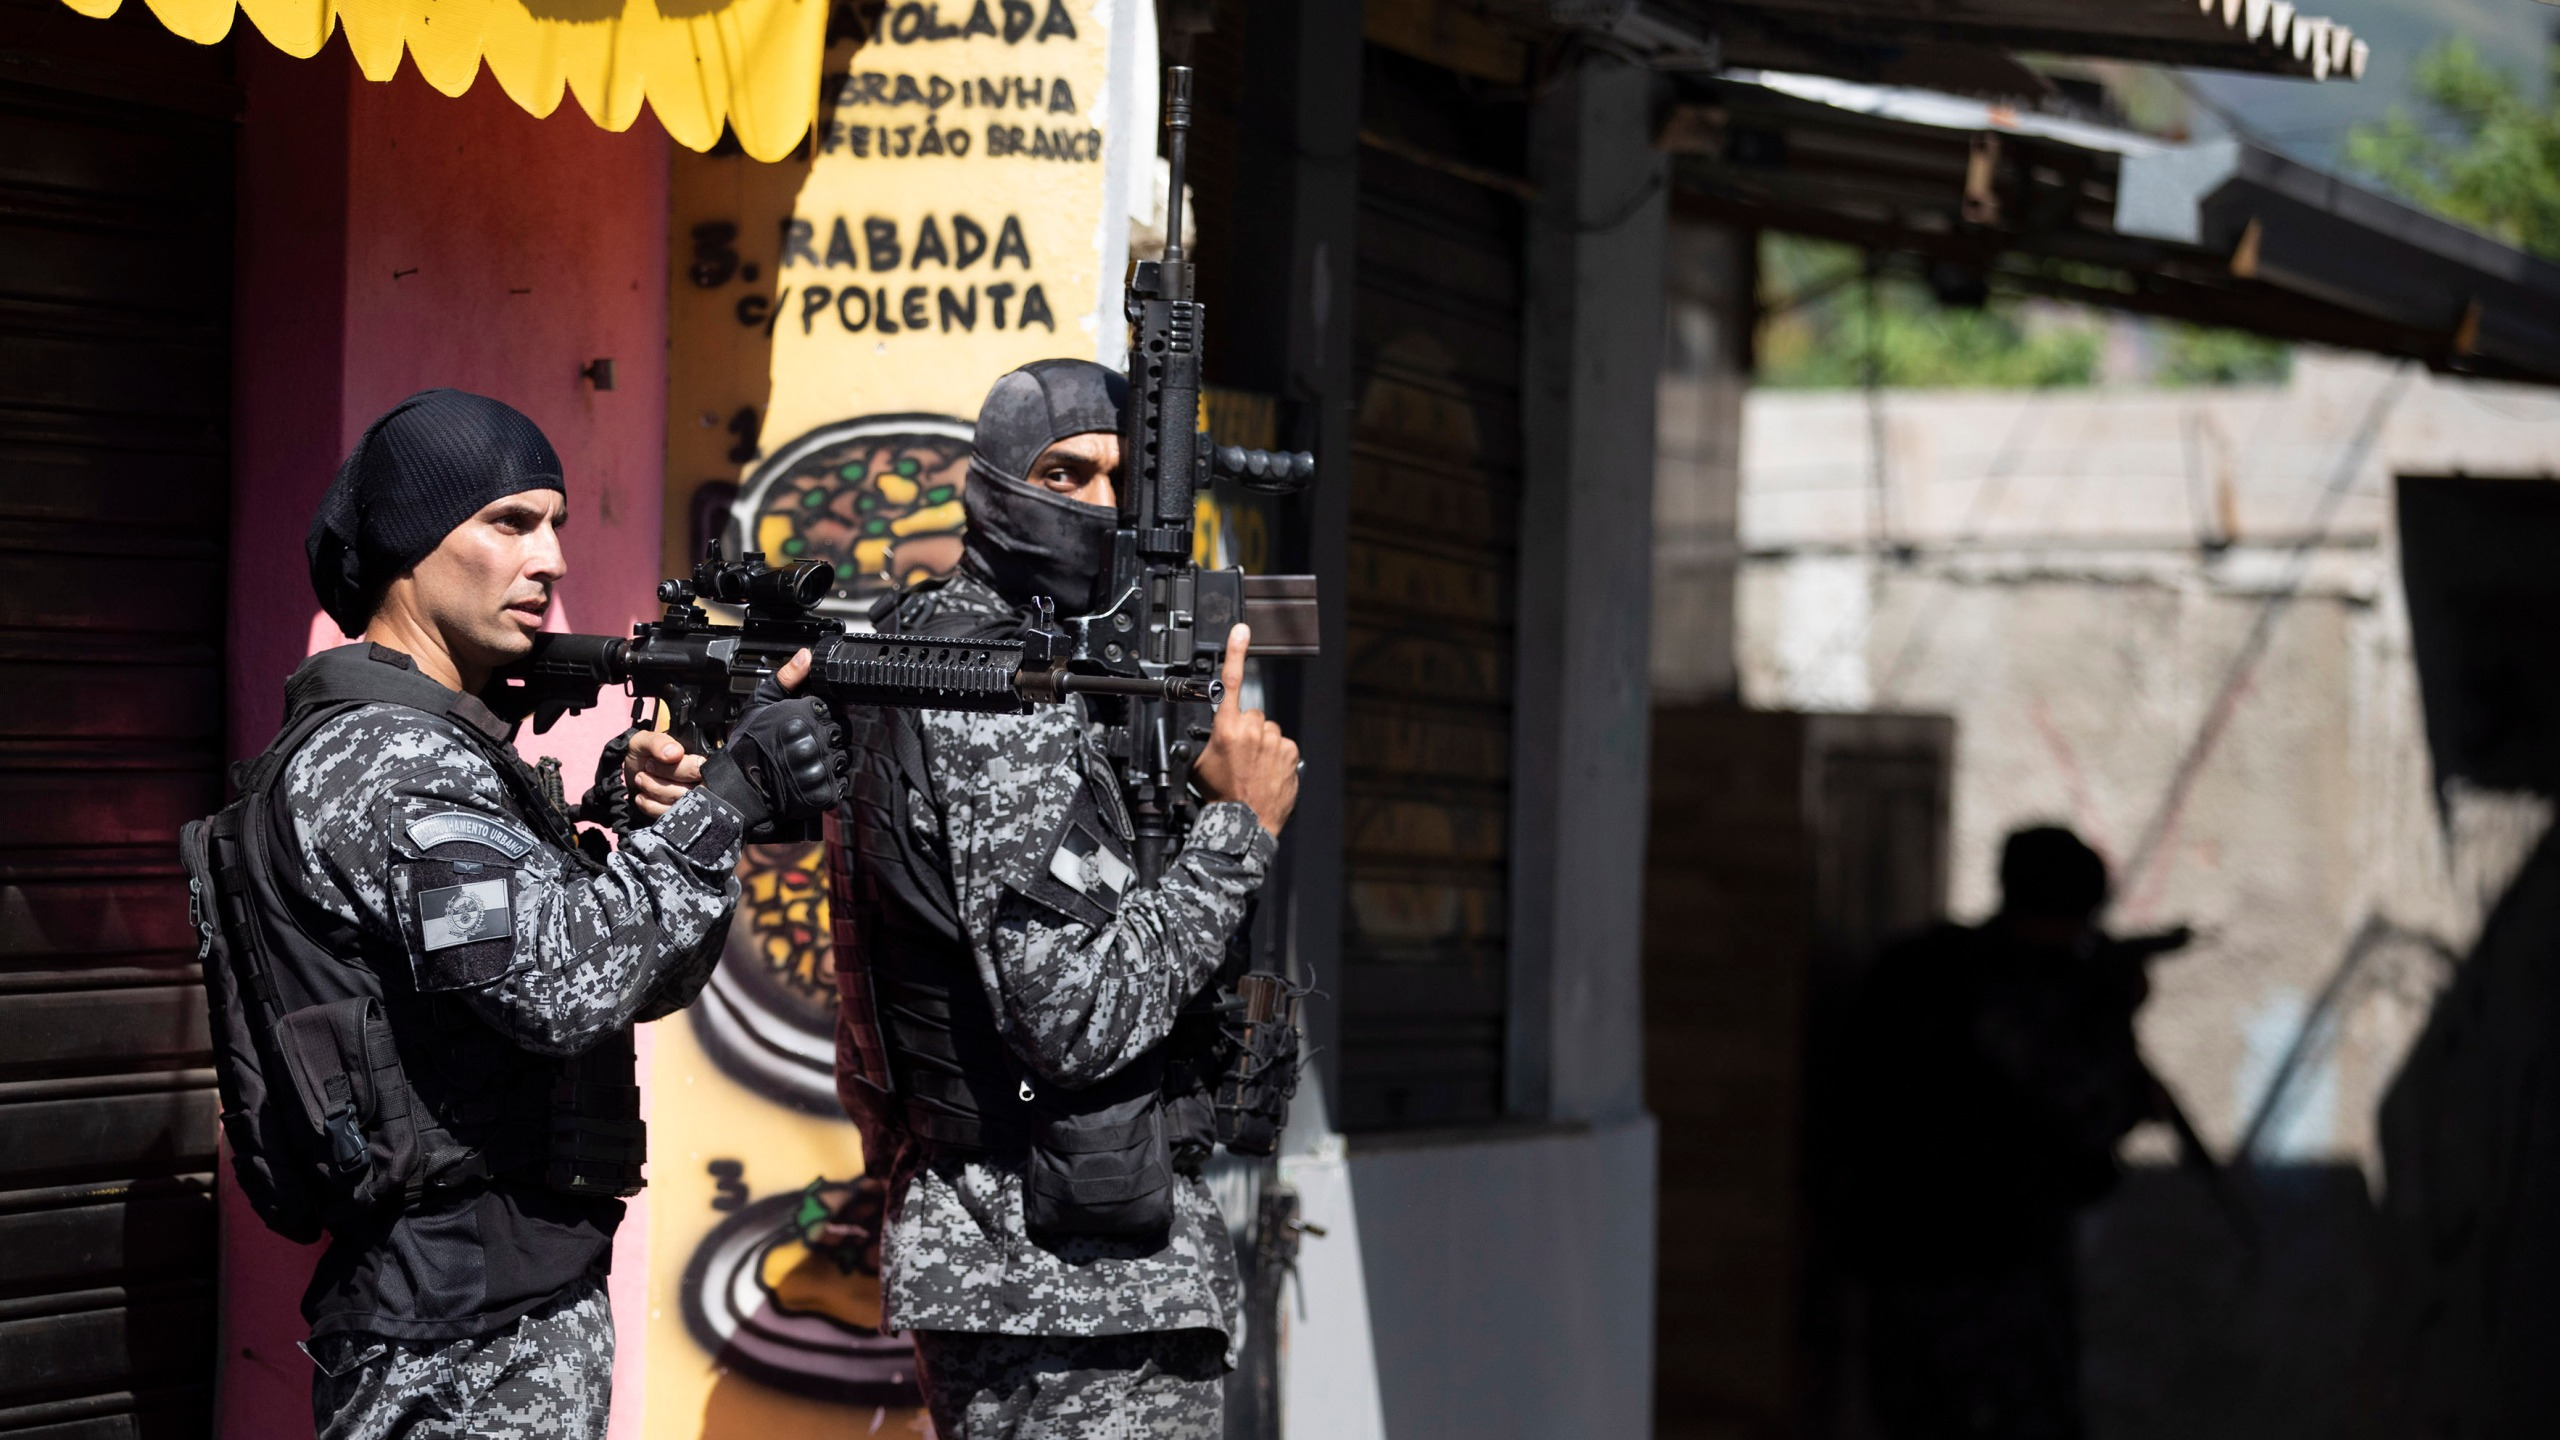 Police conduct an operation against alleged drug traffickers in the Jacarezinho favela of Rio de Janeiro, Brazil, on May 6, 2021. (Silvia Izquierdo / Associated Press)